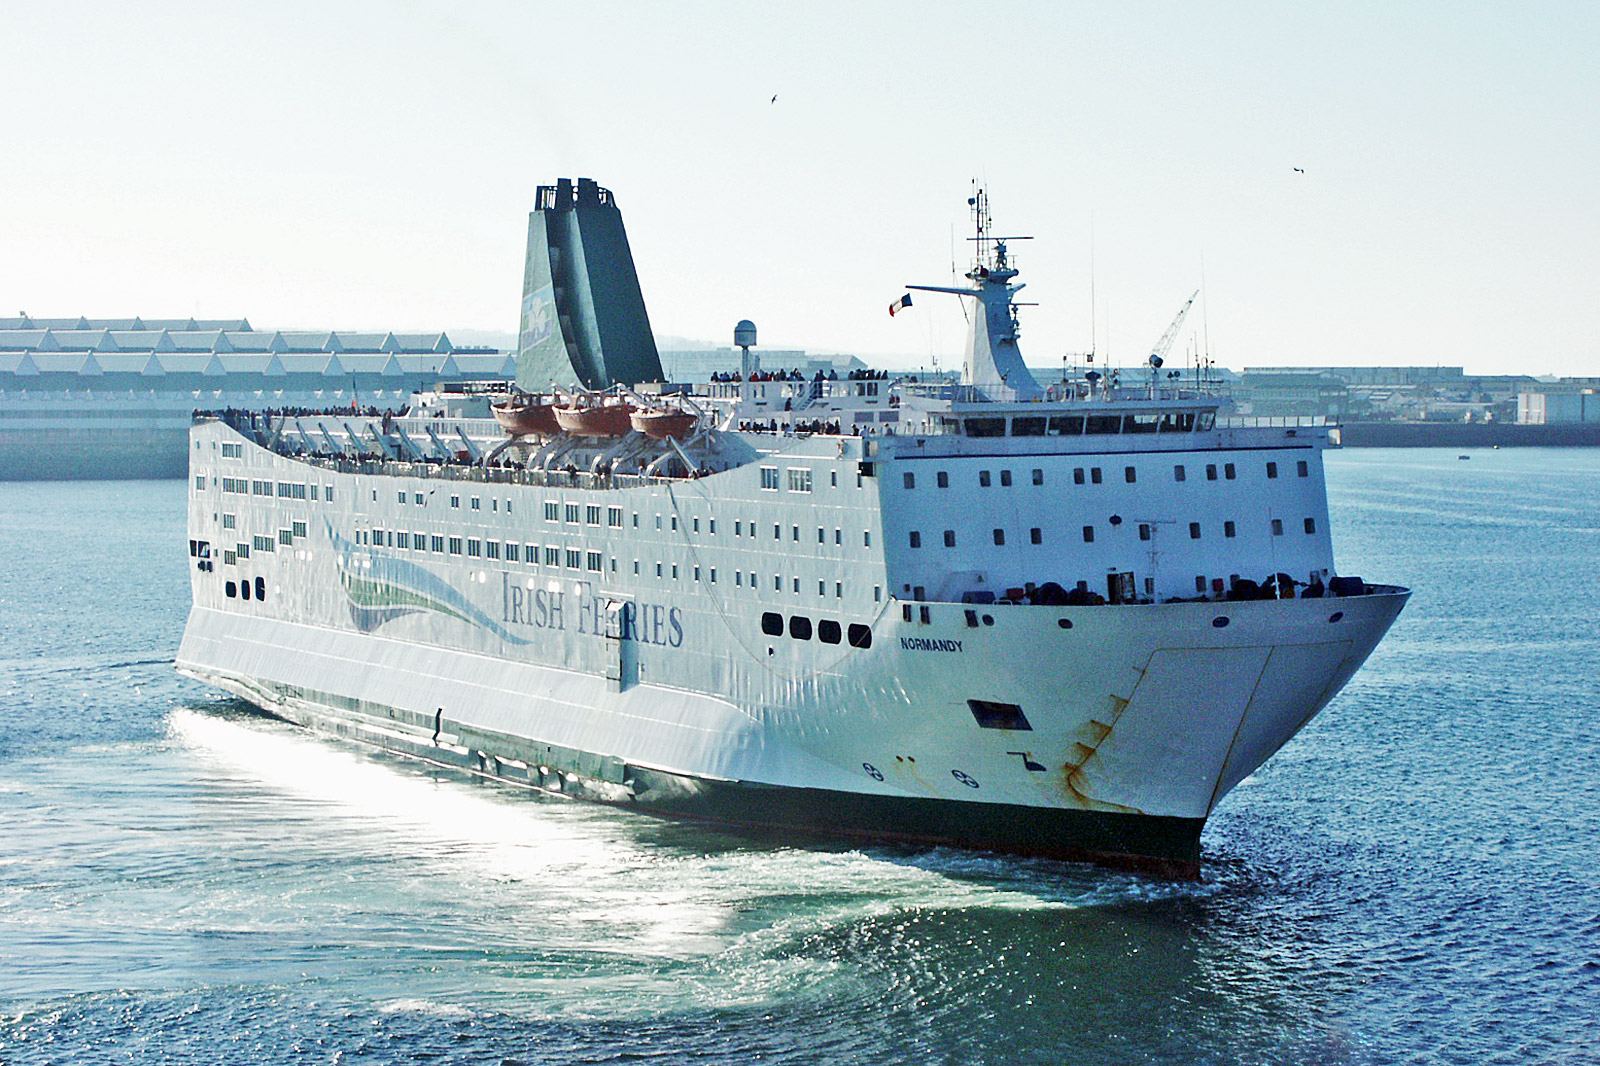 Irish Ferries Discounts